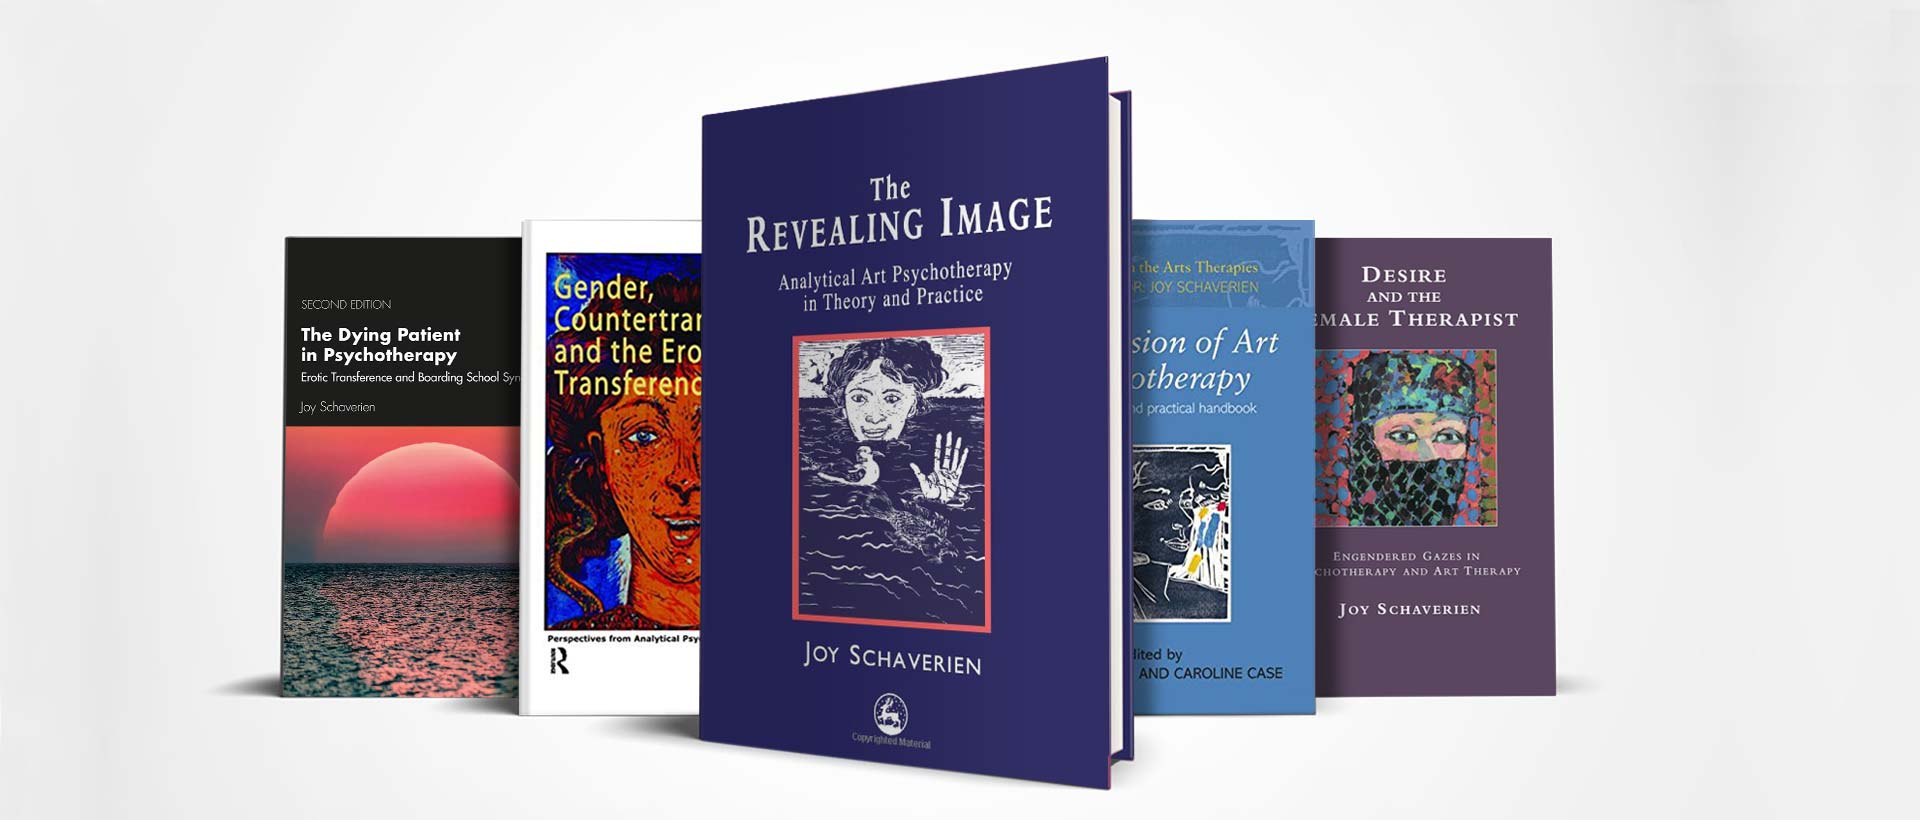 Other books by Joy Schaverien: